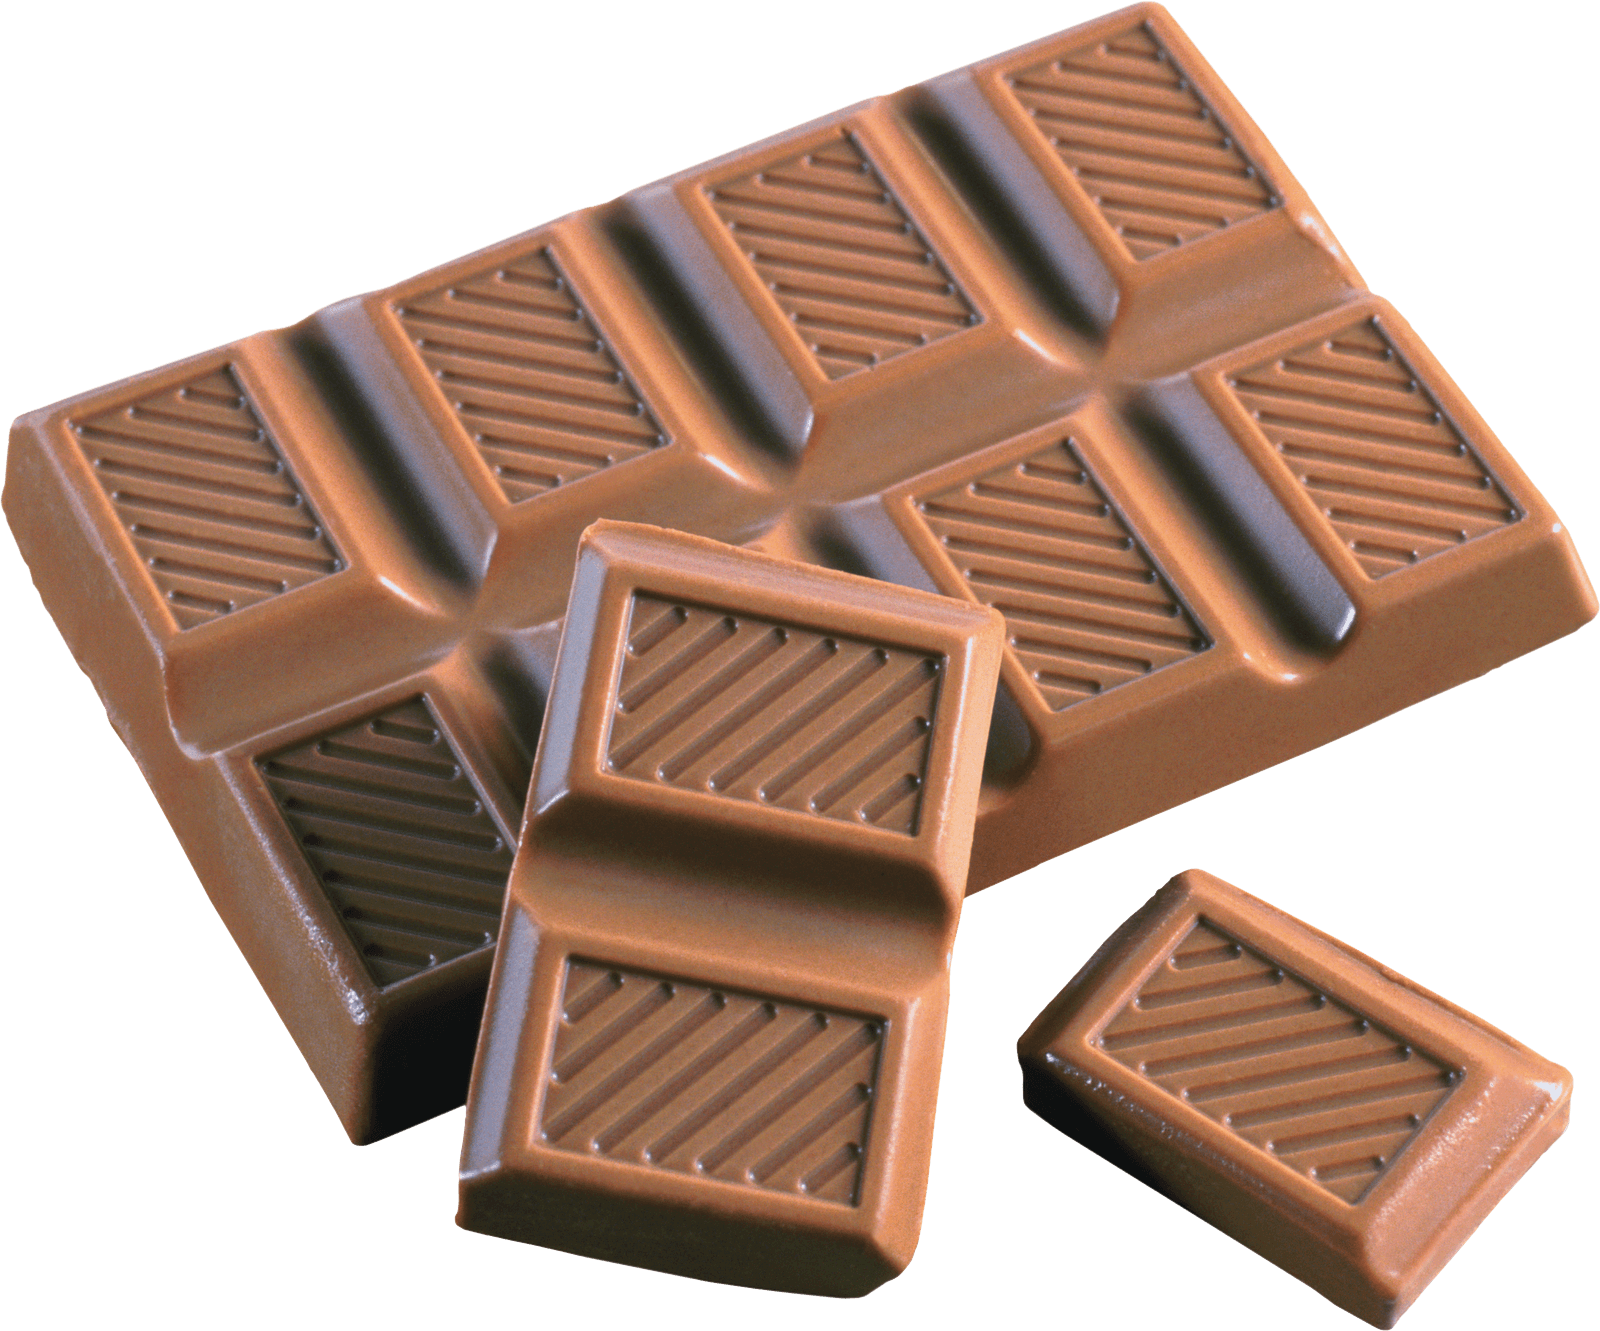 Chunks Tablet Chocolate transparent PNG - StickPNG